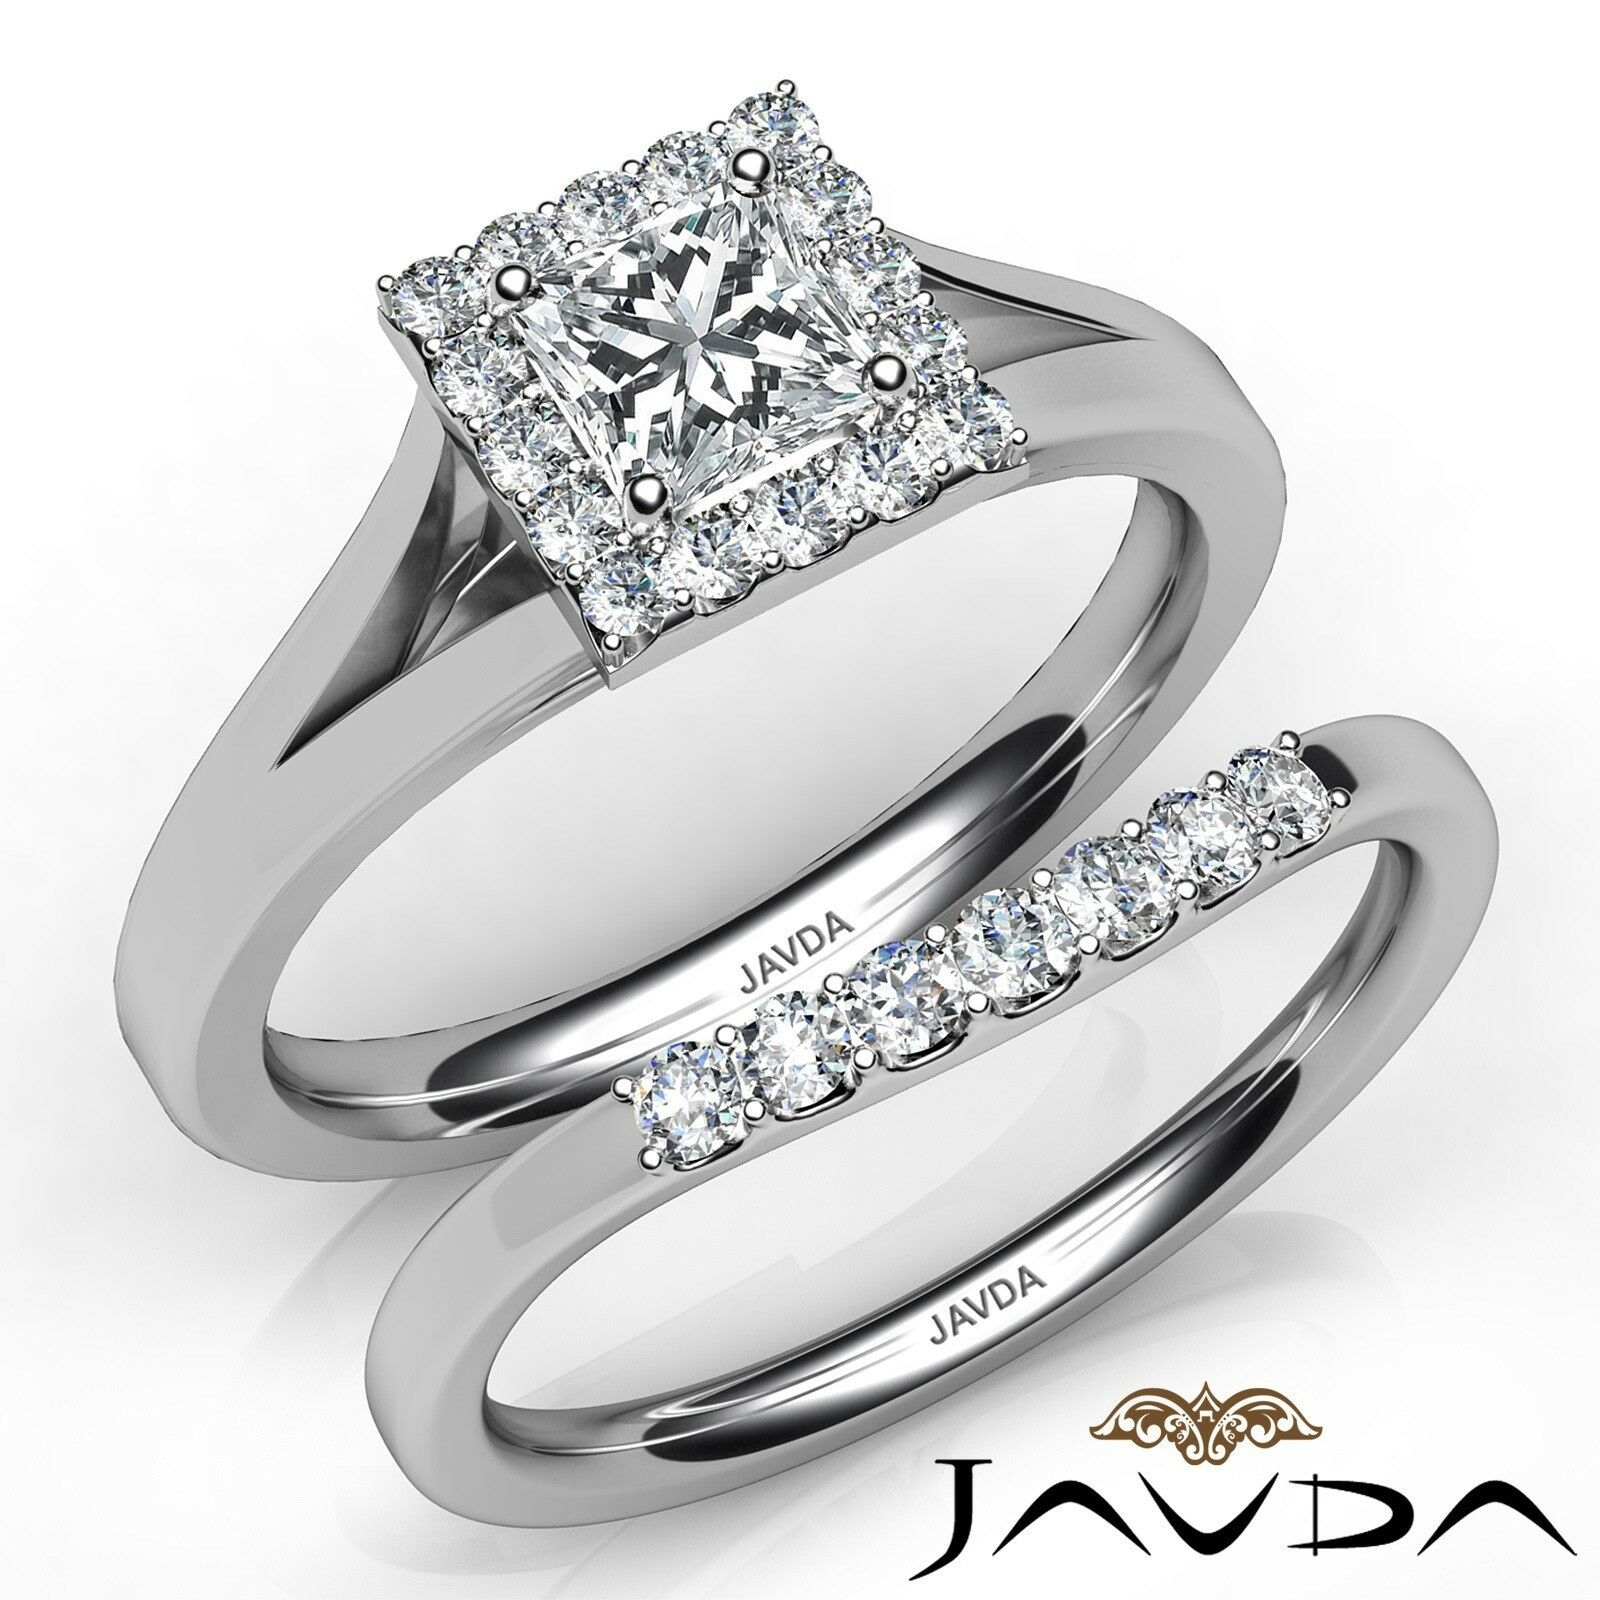 1.26ctw Halo Pave Bridal Princess Diamond Engagement Ring GIA E-VS2 White Gold